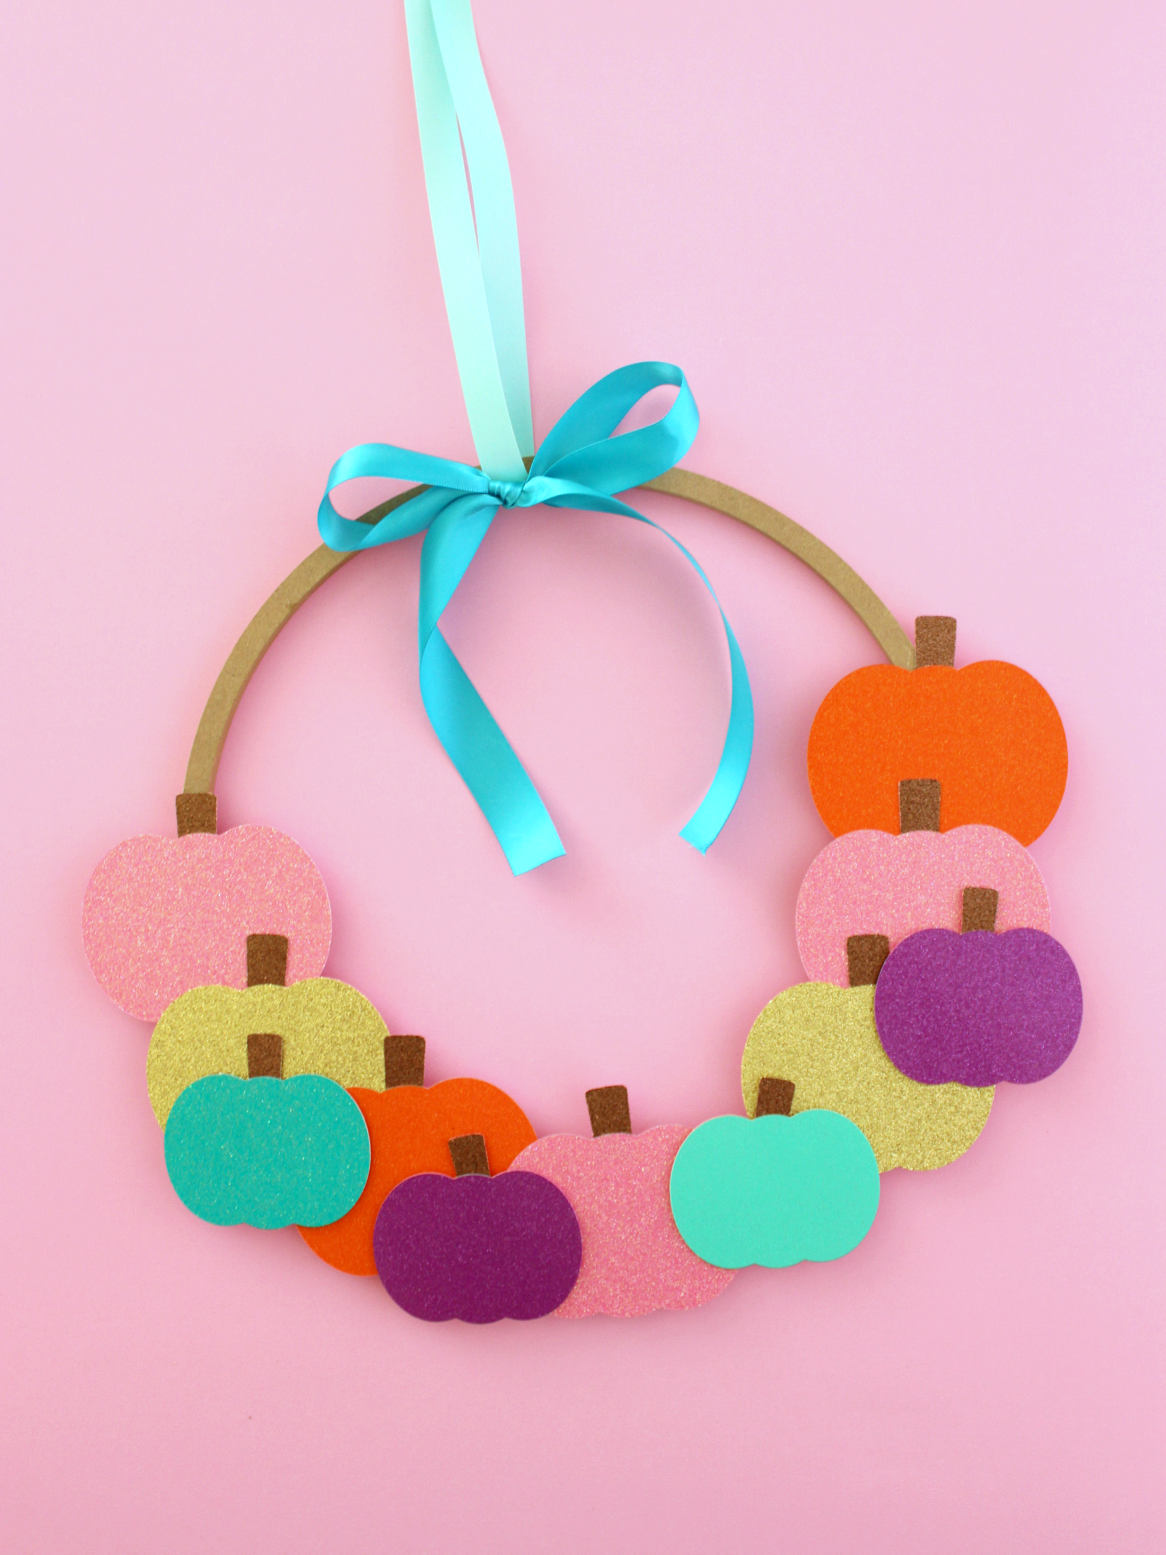 GLITTERY PAPER PUMPKINS WREATH (WITH FREE TEMPLATE)